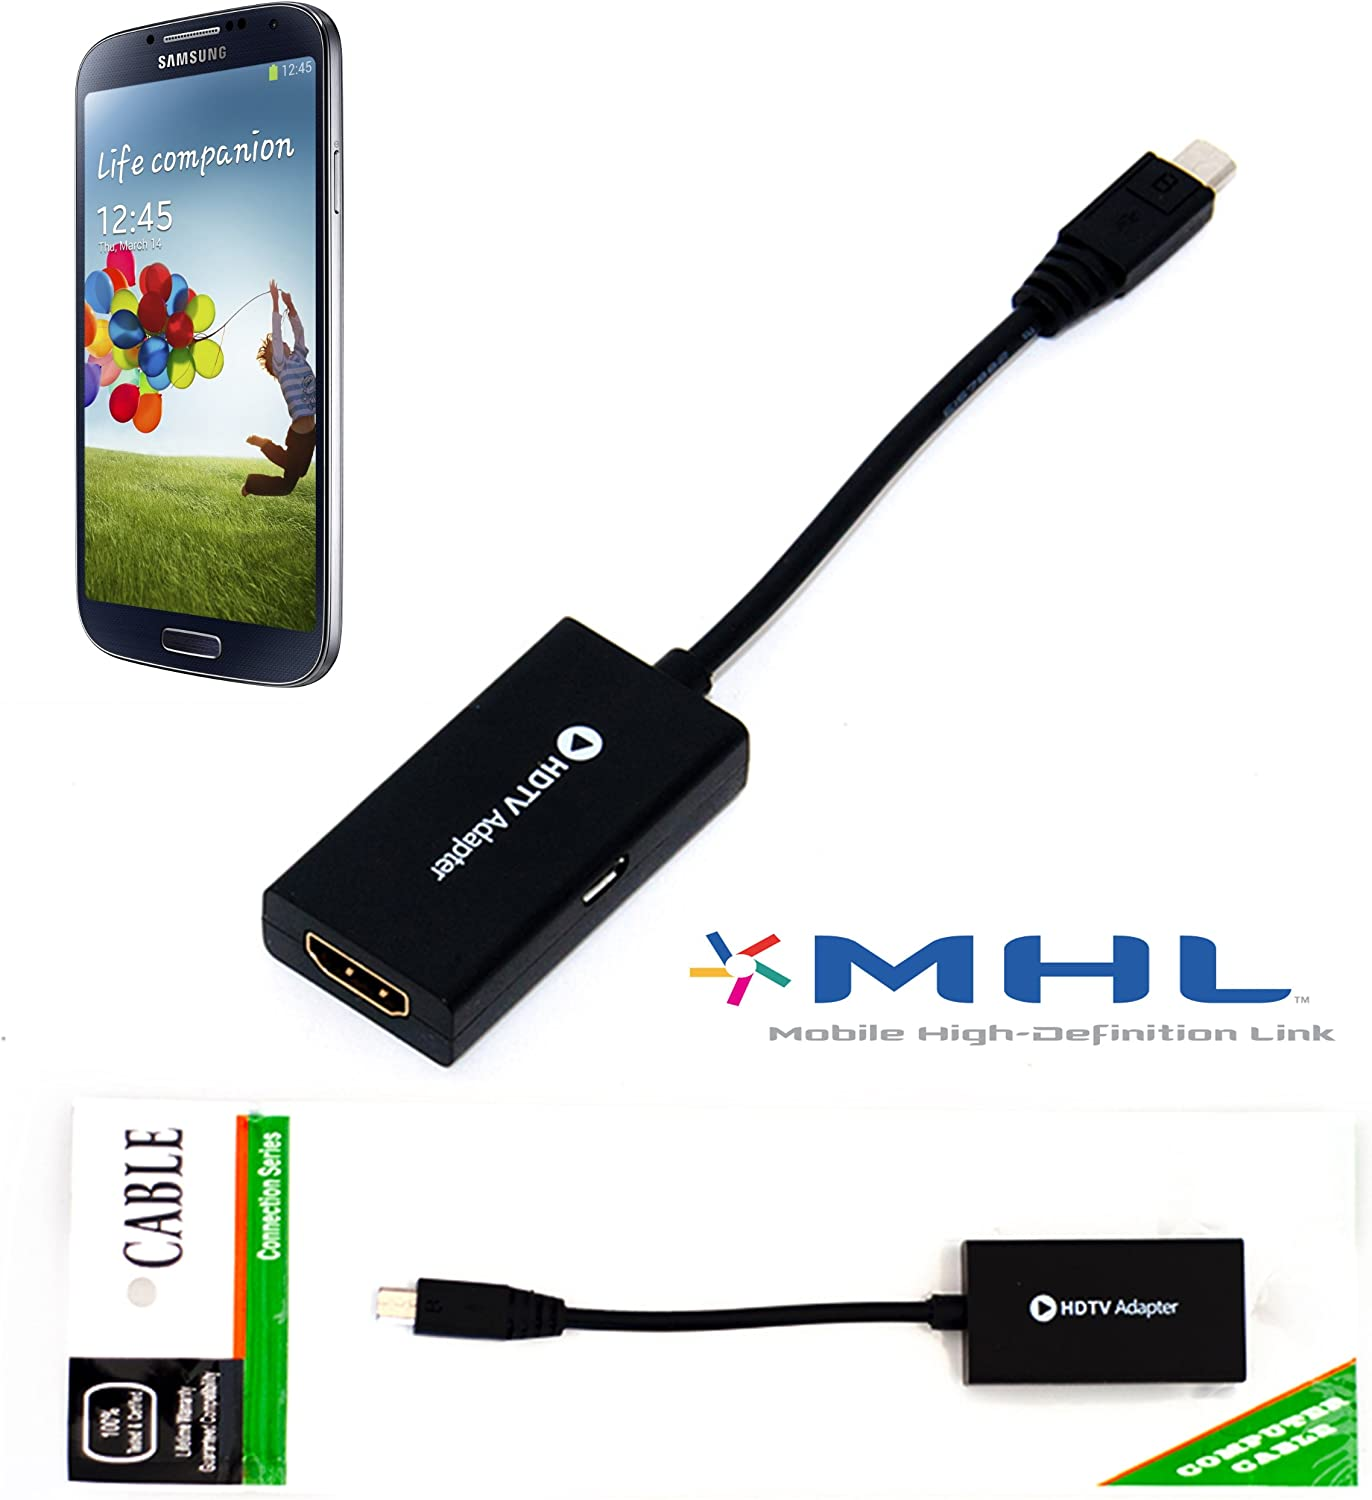 MHL to HDMI TV-out for Samsung Galaxy S4 Note 2 Adapter HDTV 11 pin Cable from HNPtech: Amazon.es: Electrónica